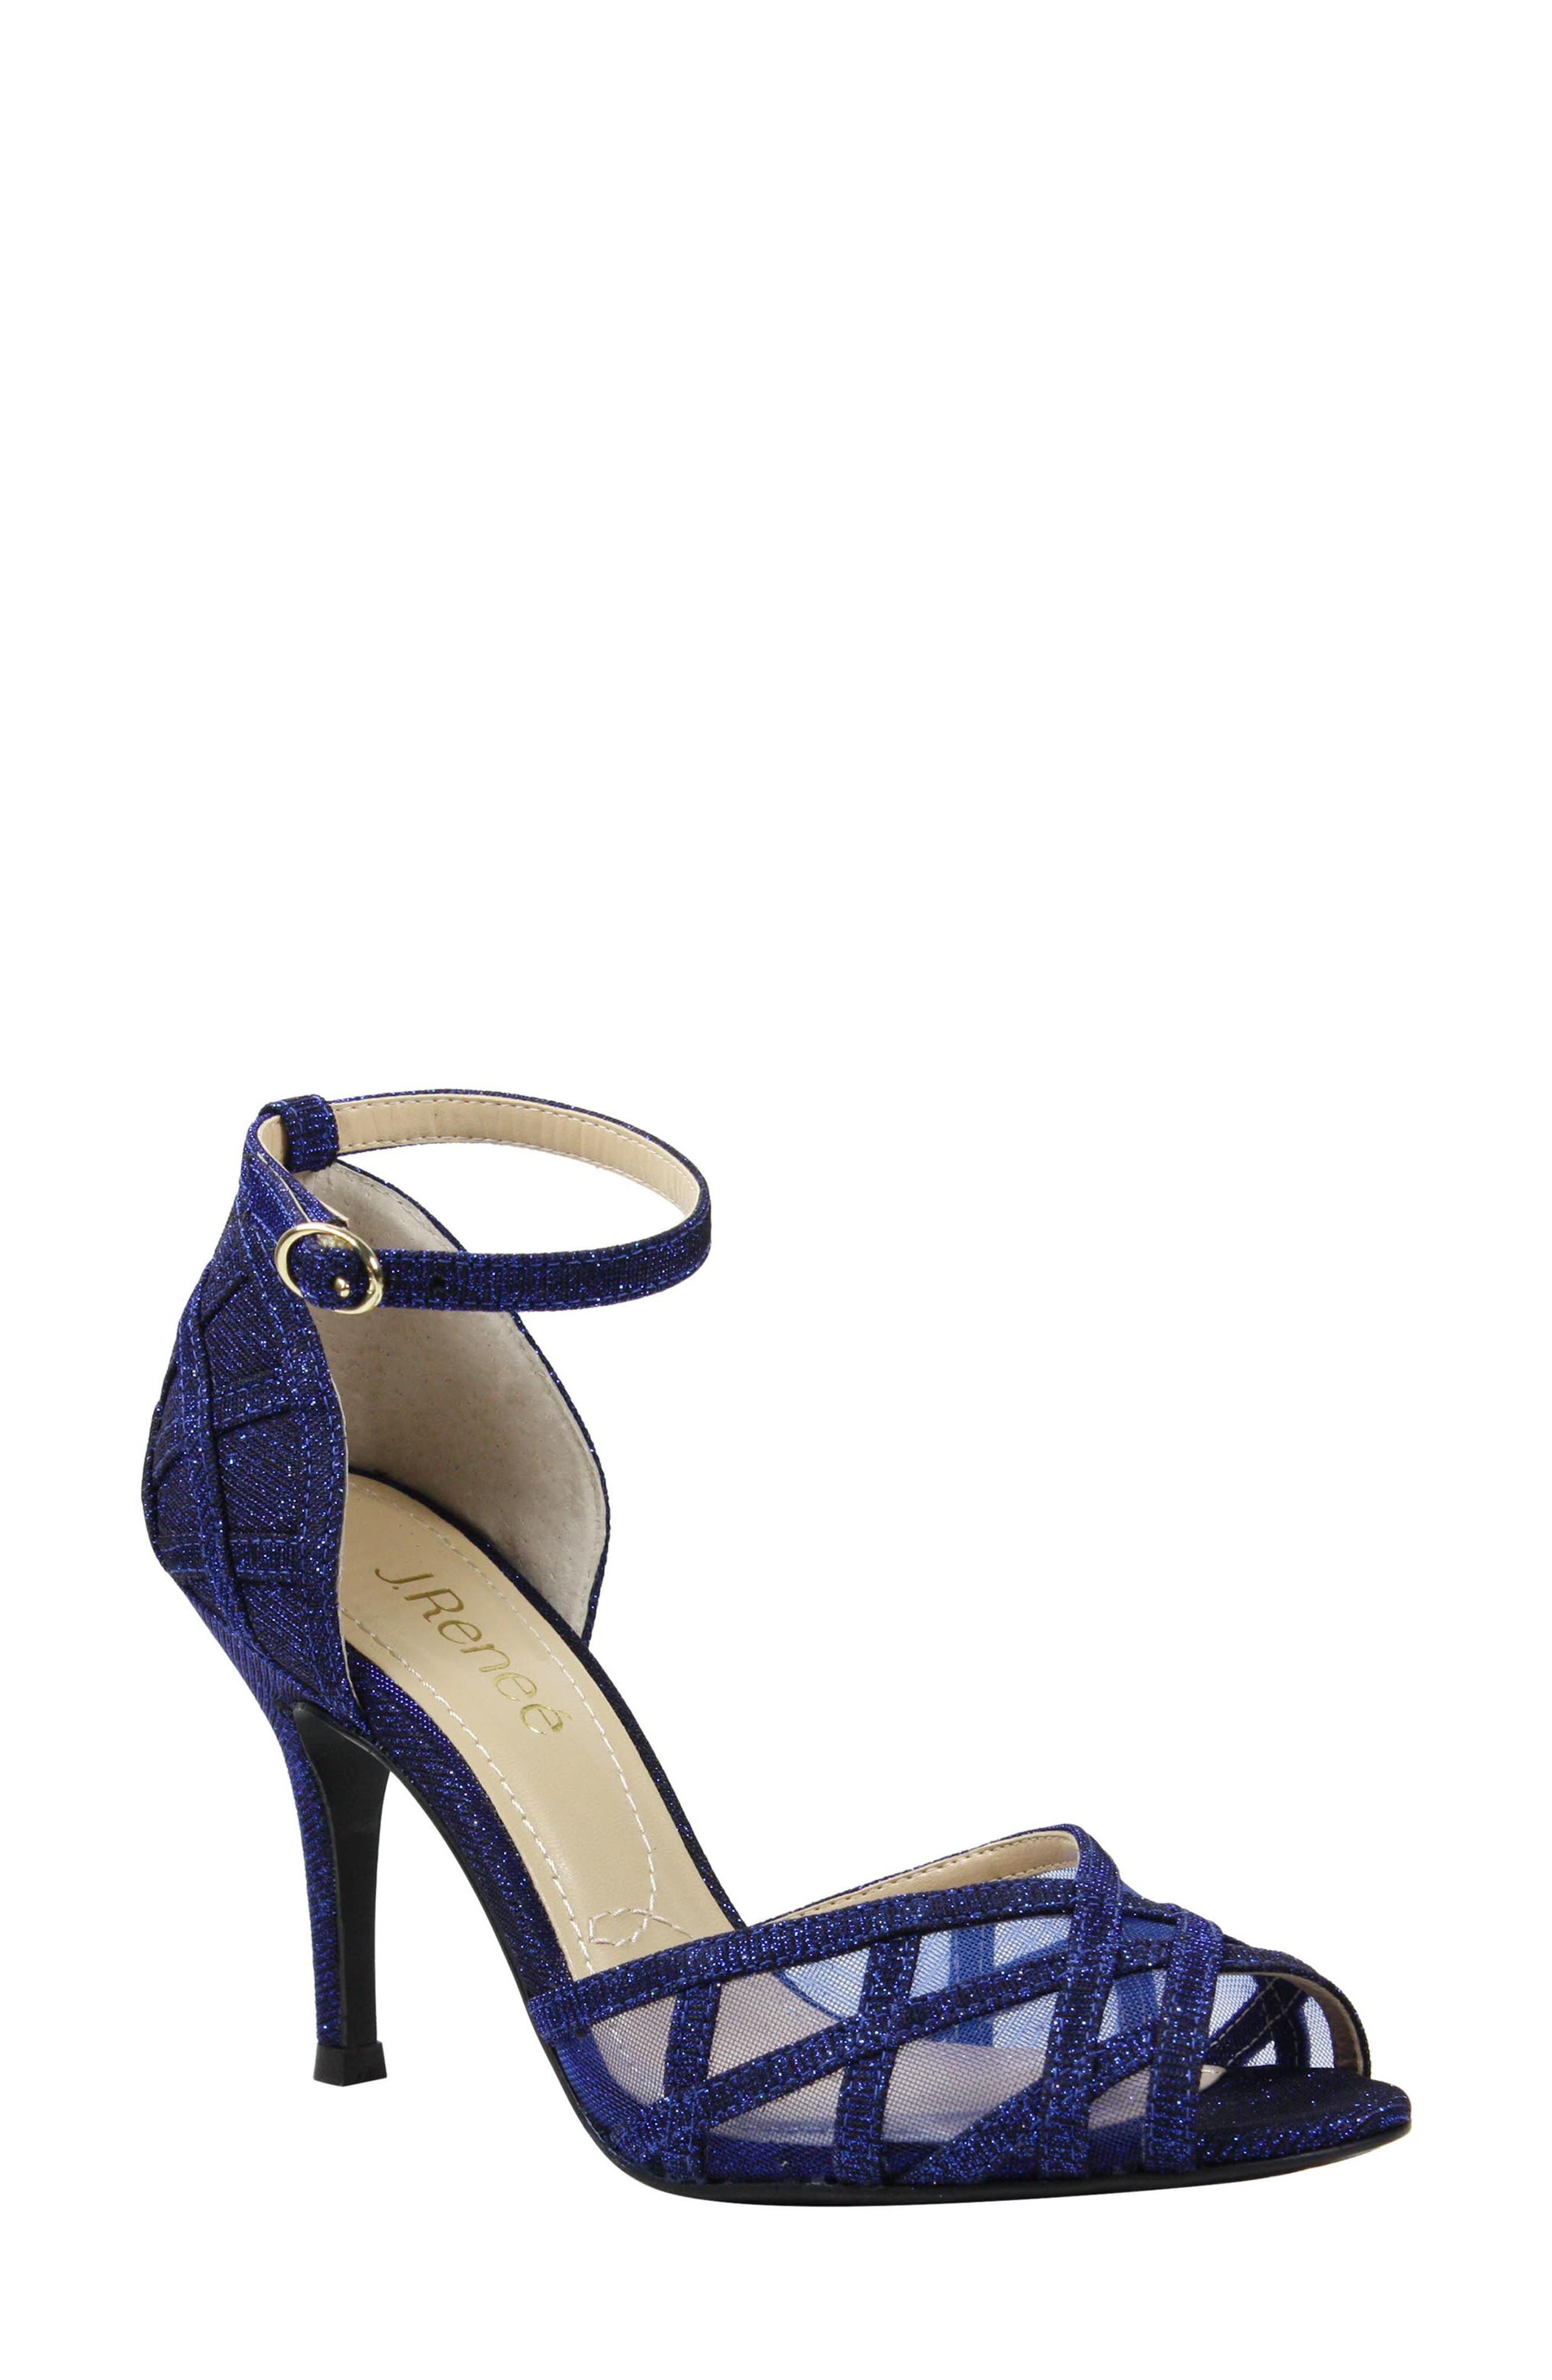 Mataro Embellished Ankle Strap Pump,                         Main,                         color, 400